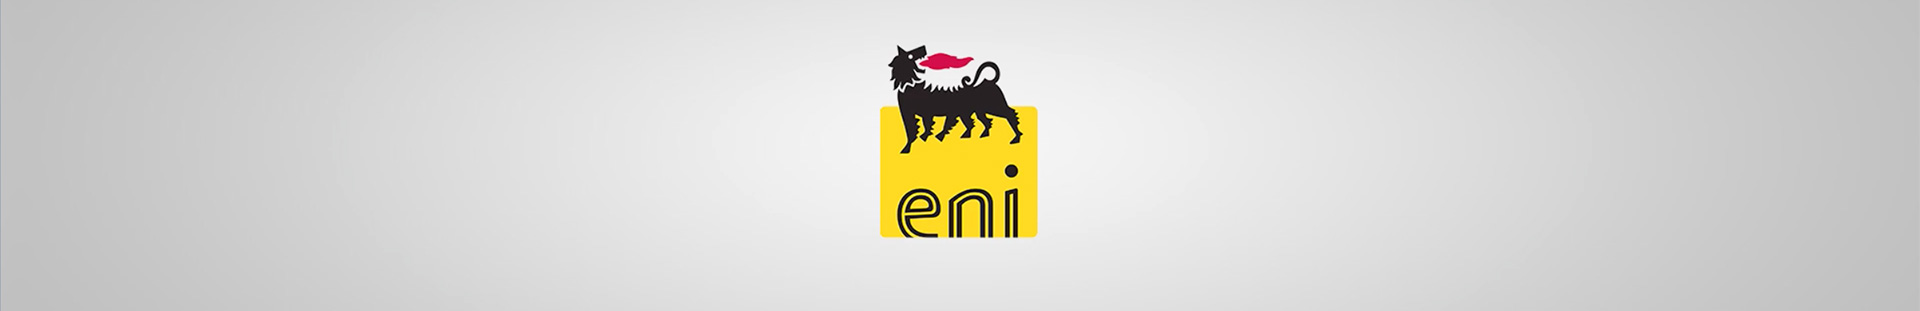 Monkey Talkie - Eni - EniRecord - Documentario - Produzione video